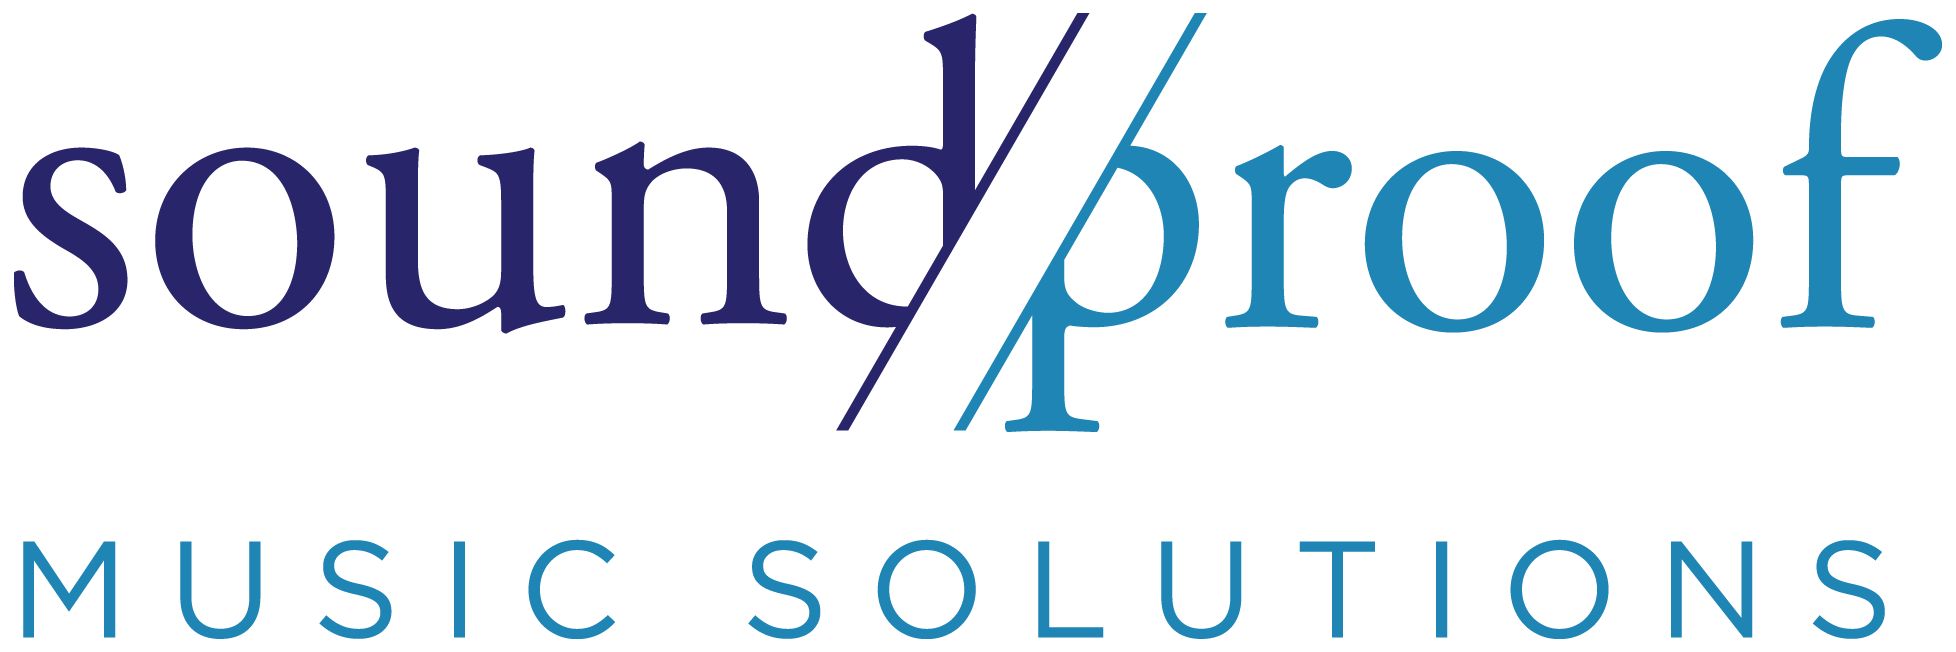 Soundproof Music Solutions